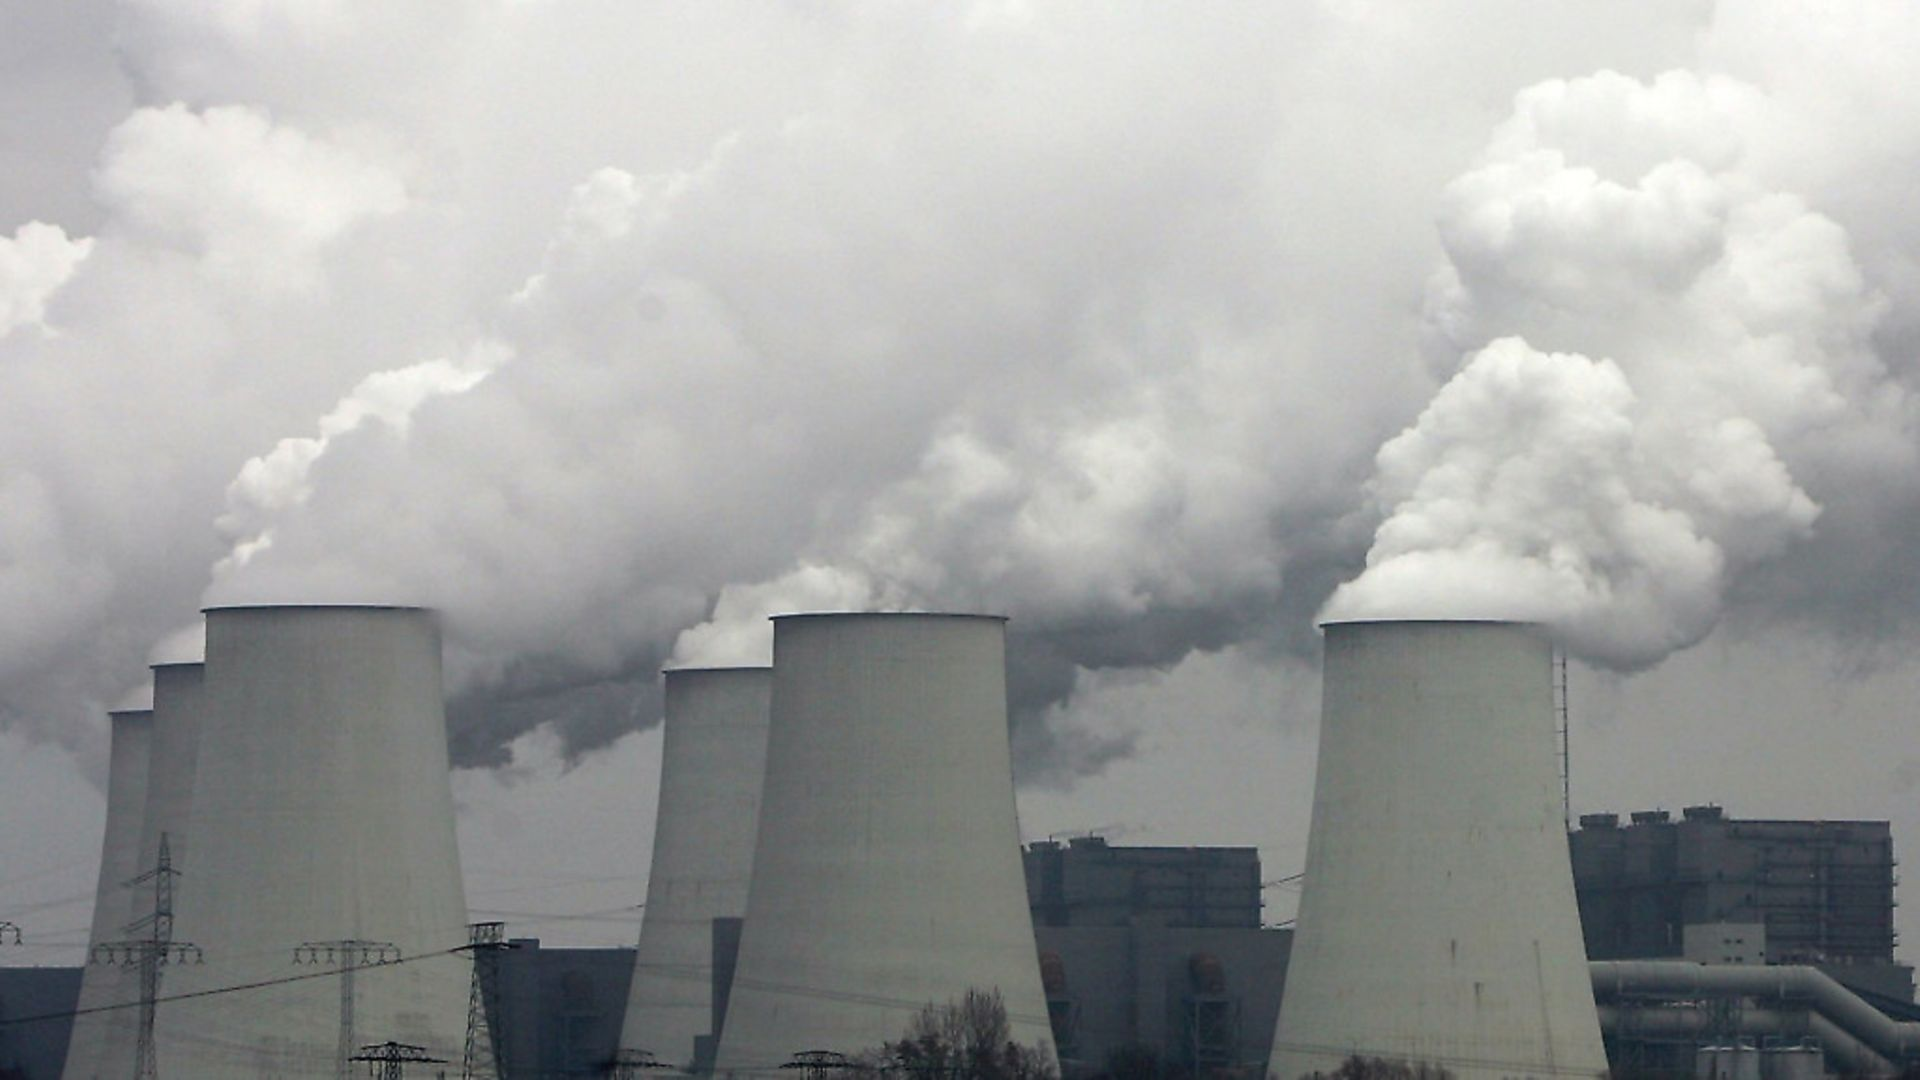 Exhaust plumes from cooling towers at the Jaenschwalde lignite coal-fired power station. Photo: Getty Images - Credit: Getty Images